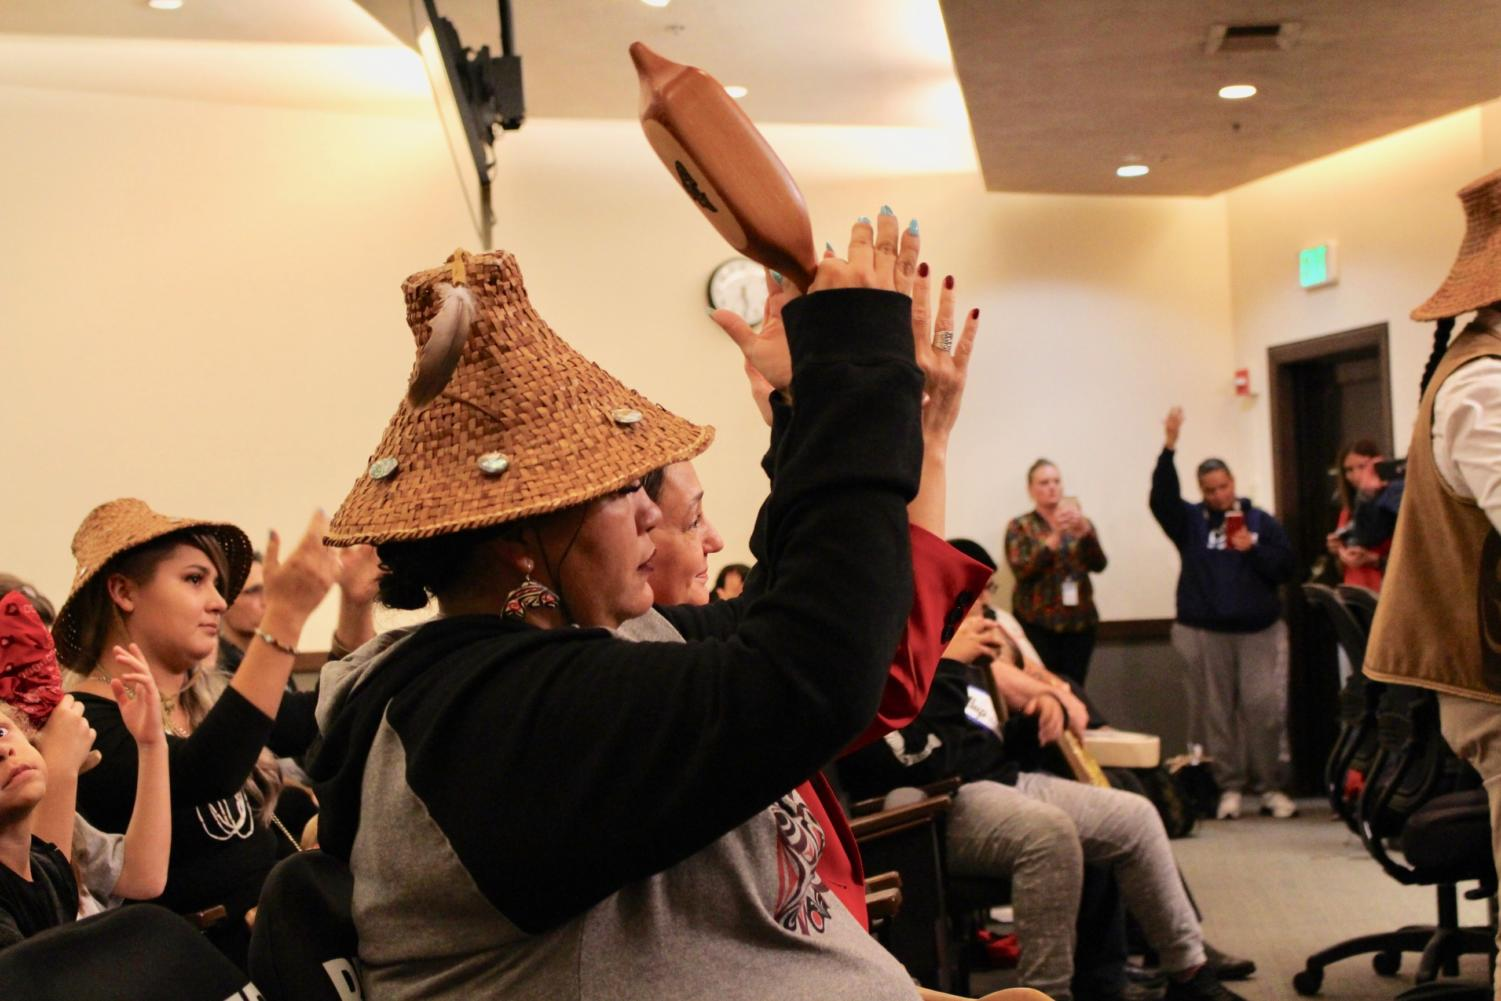 Puyallup Tribe members performed a drum ceremony at City Hall on Tuesday after City Council proclaimed the second Tuesday of October as Indigenous Peoples' Day.